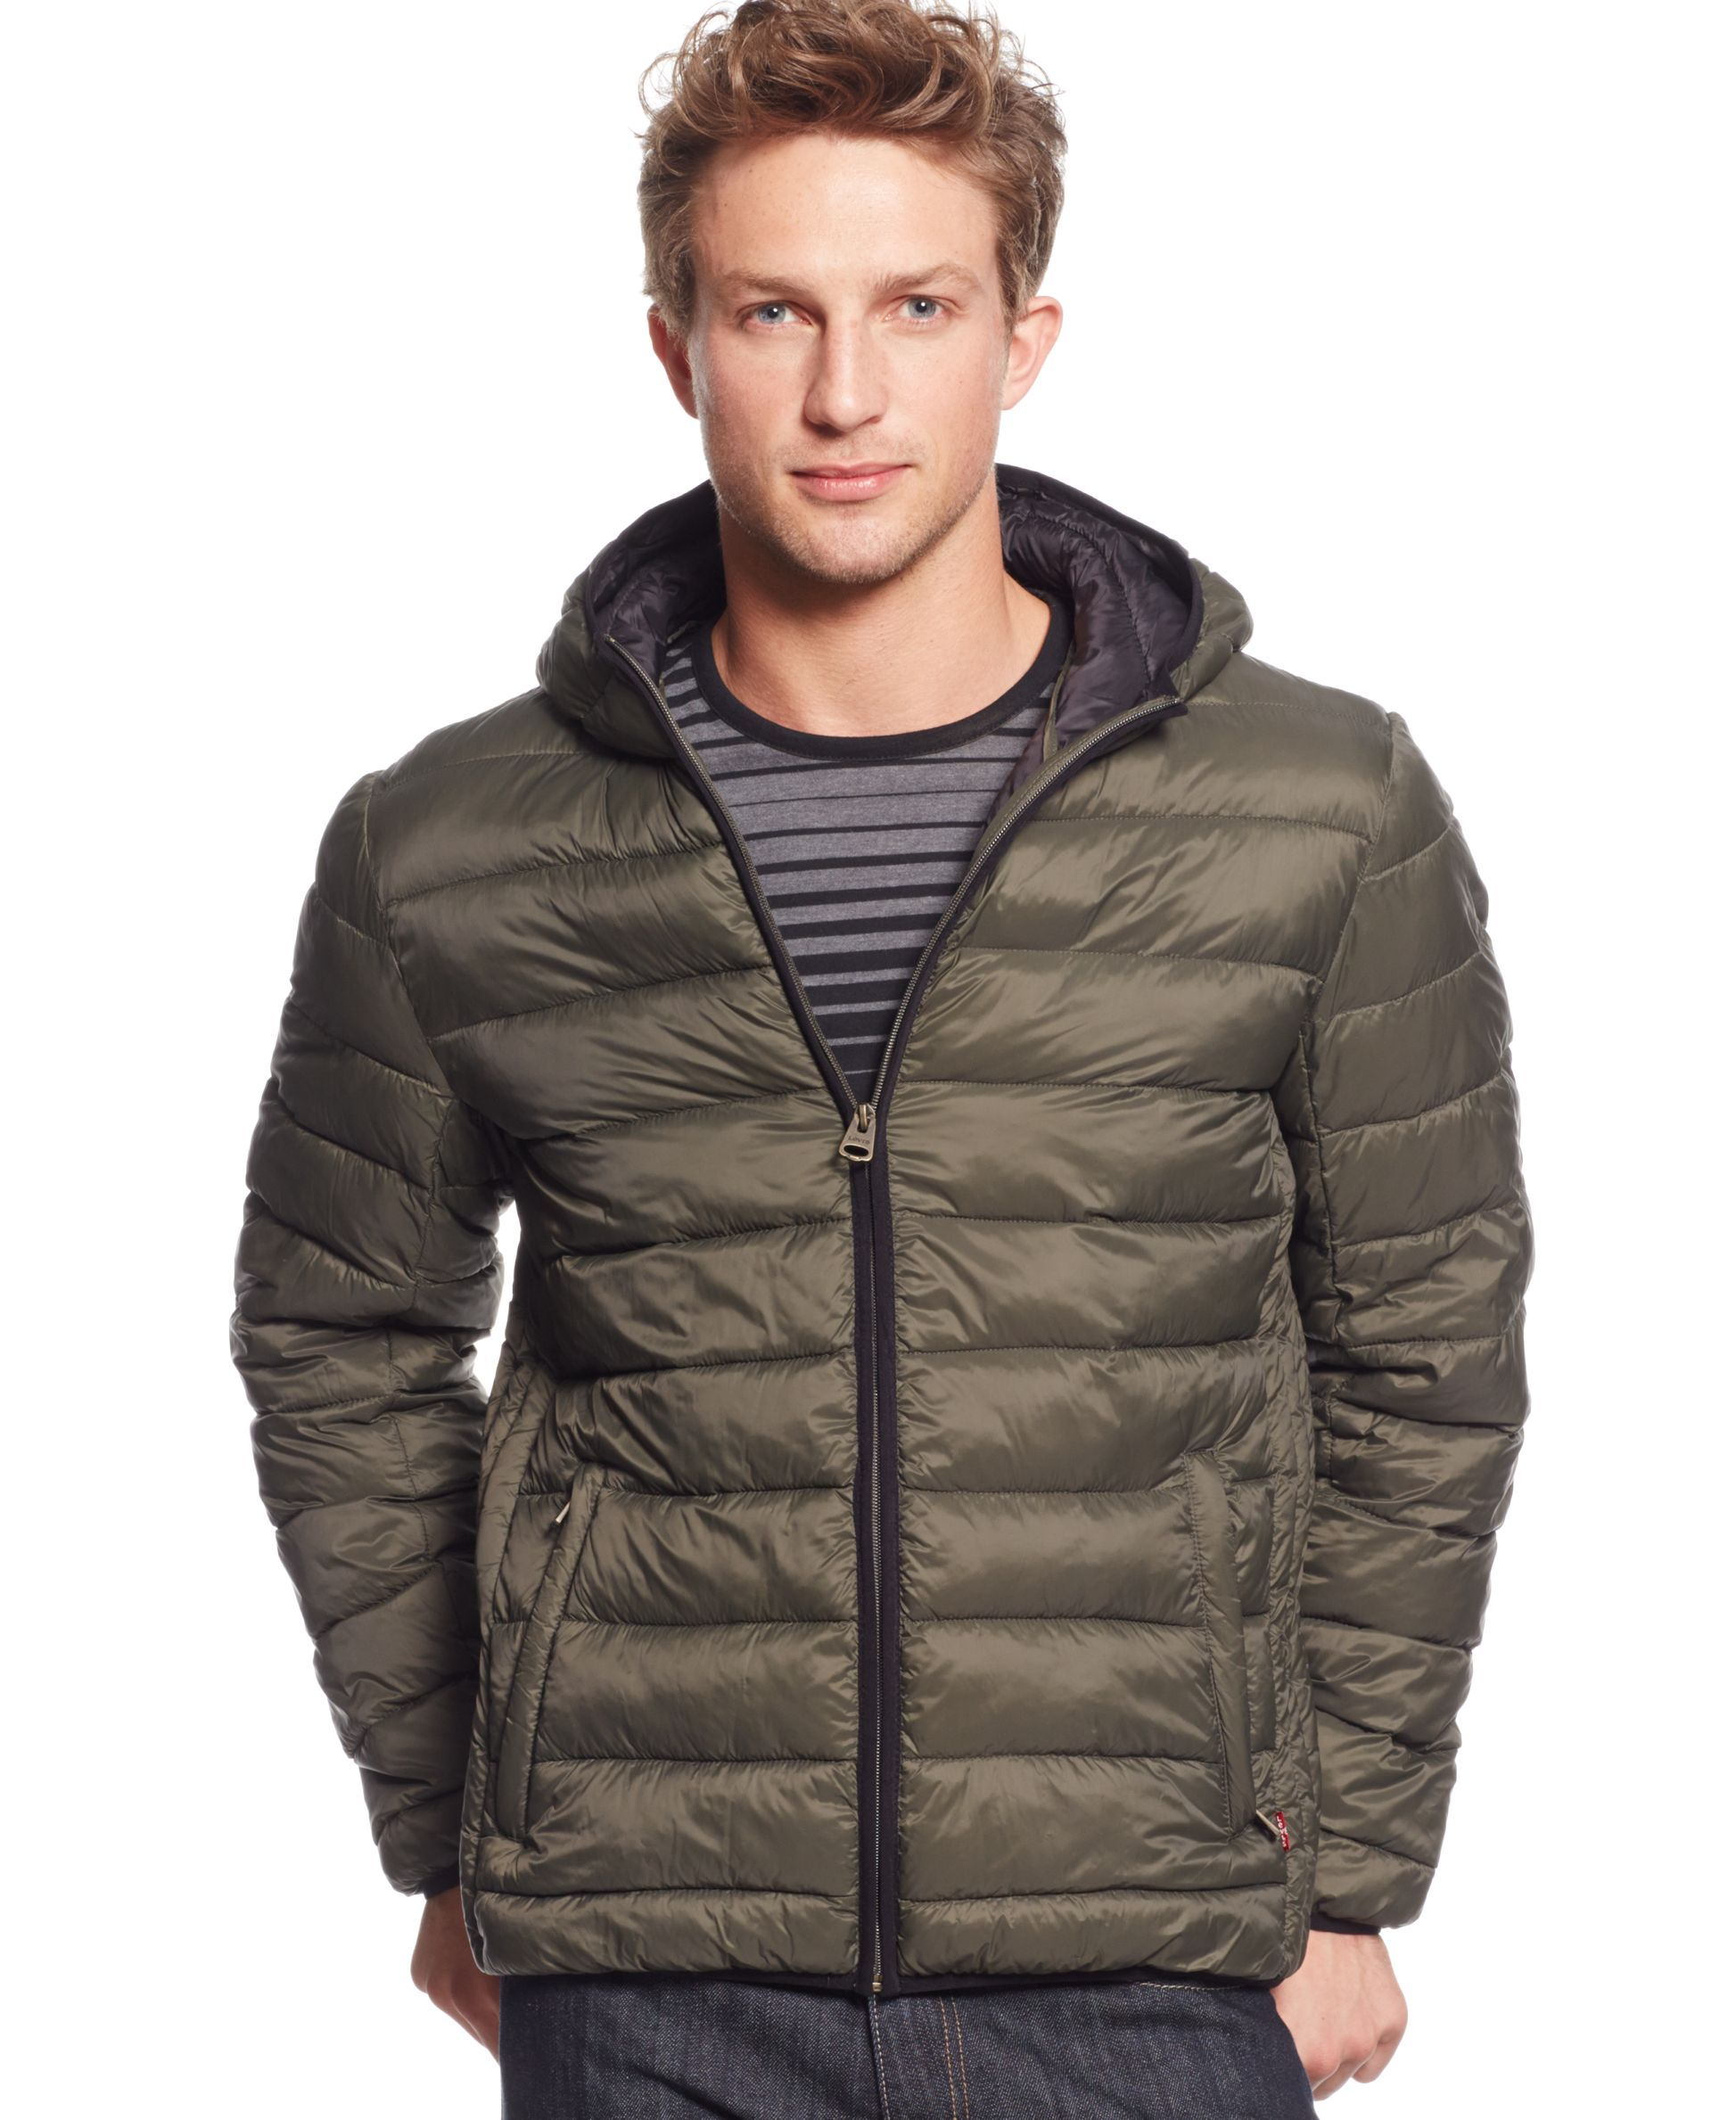 Levi's® Lightweight Packable Puffer Hoodie Jacket - Coats & Jackets - Men -  Macy's